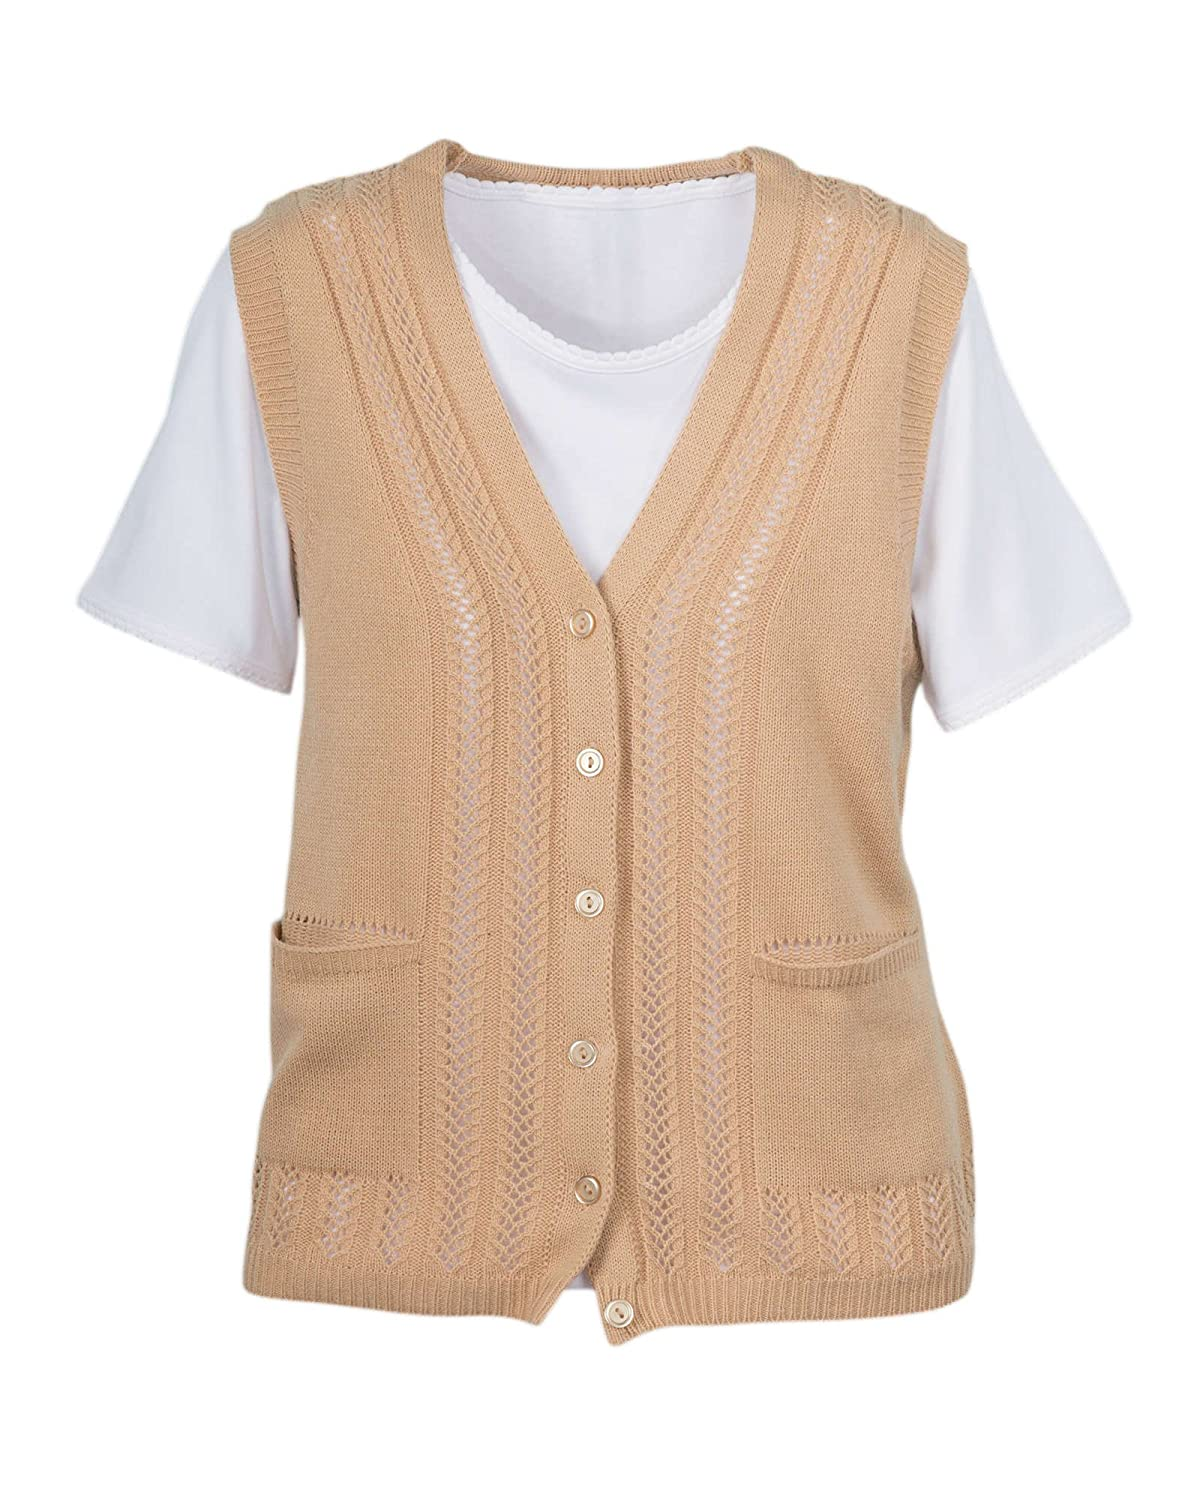 National Classic Sweater Vest at Amazon Women's Clothing store: